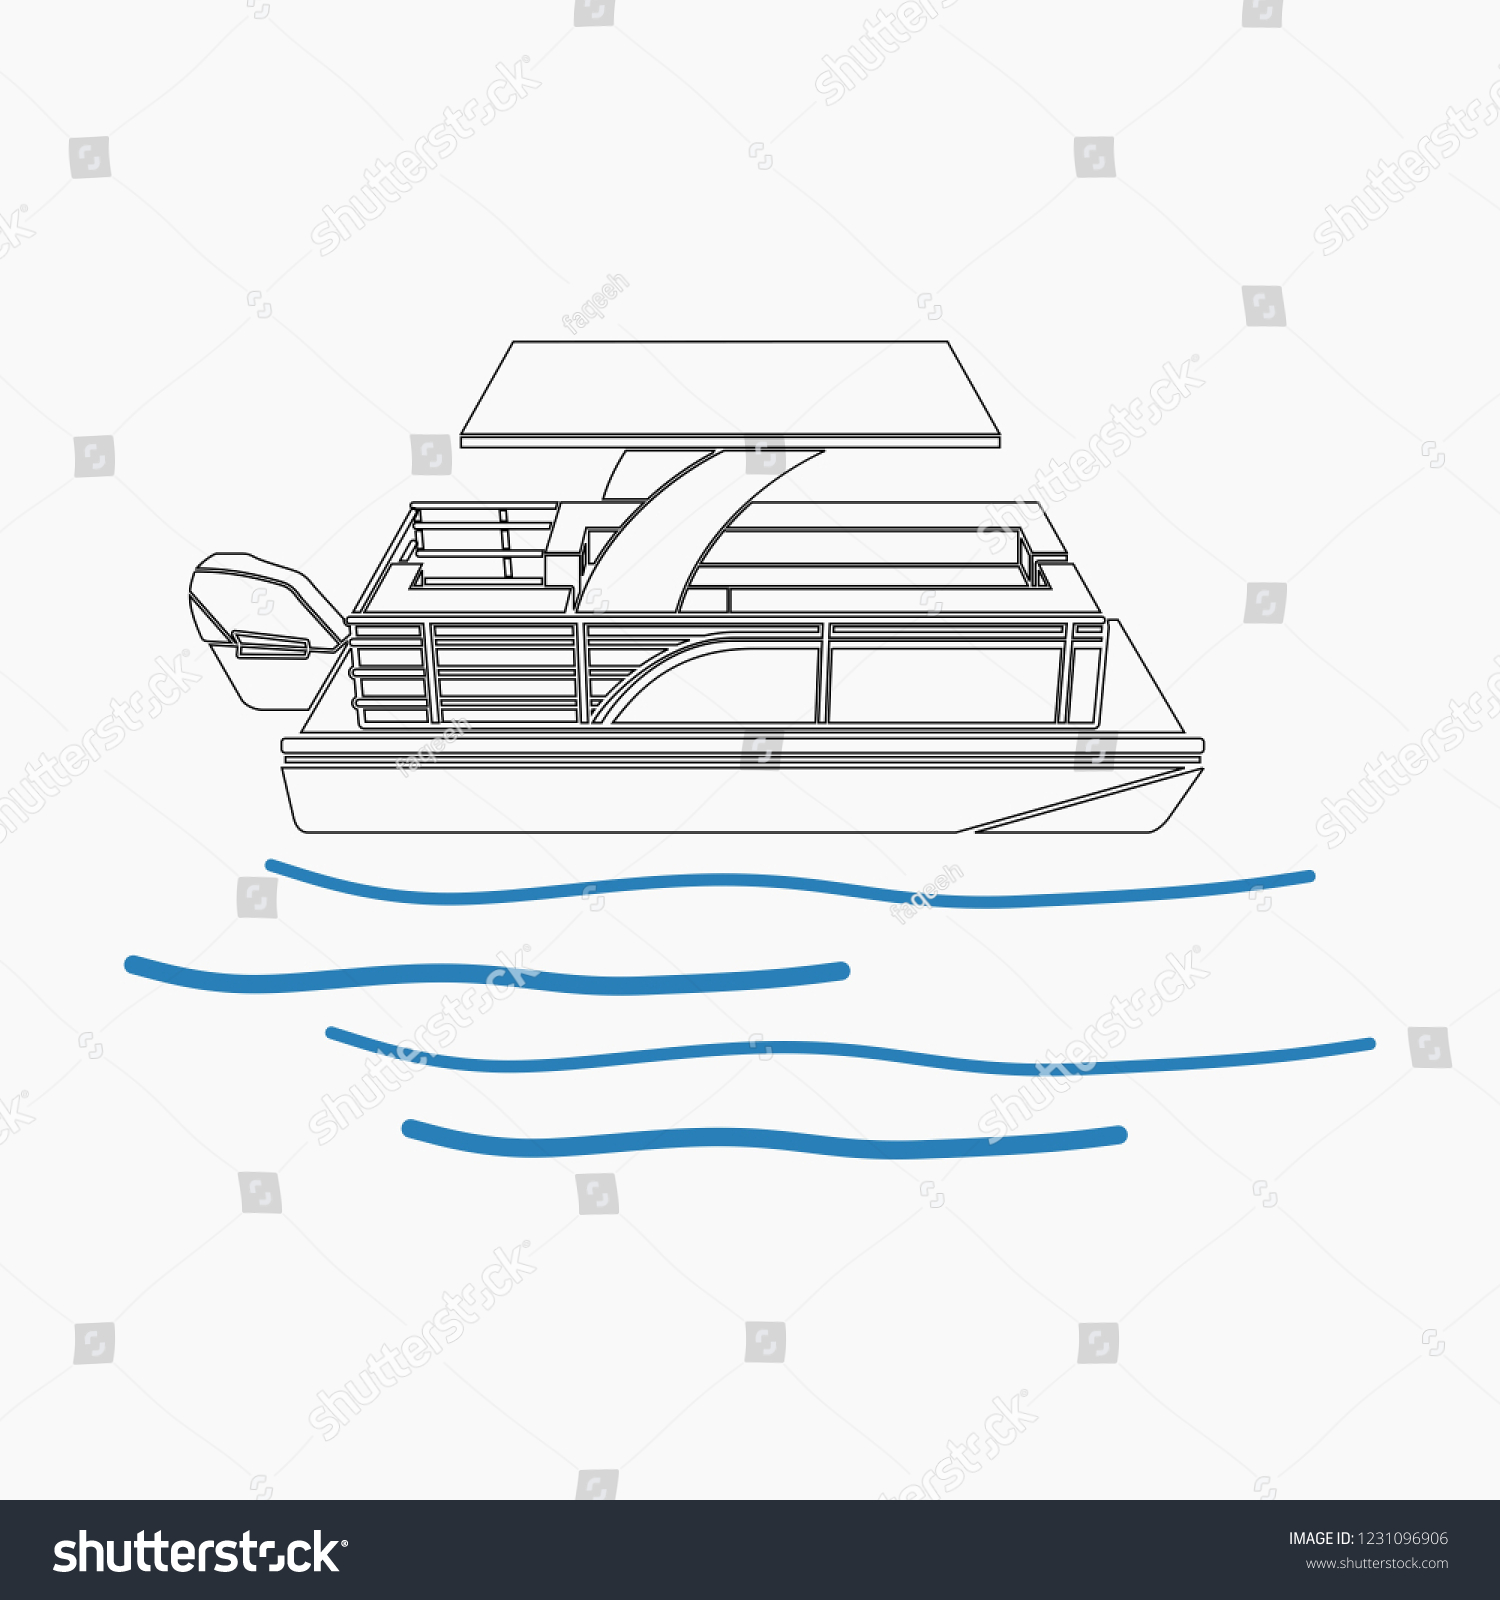 hight resolution of pontoon boat vector illustration in outline style